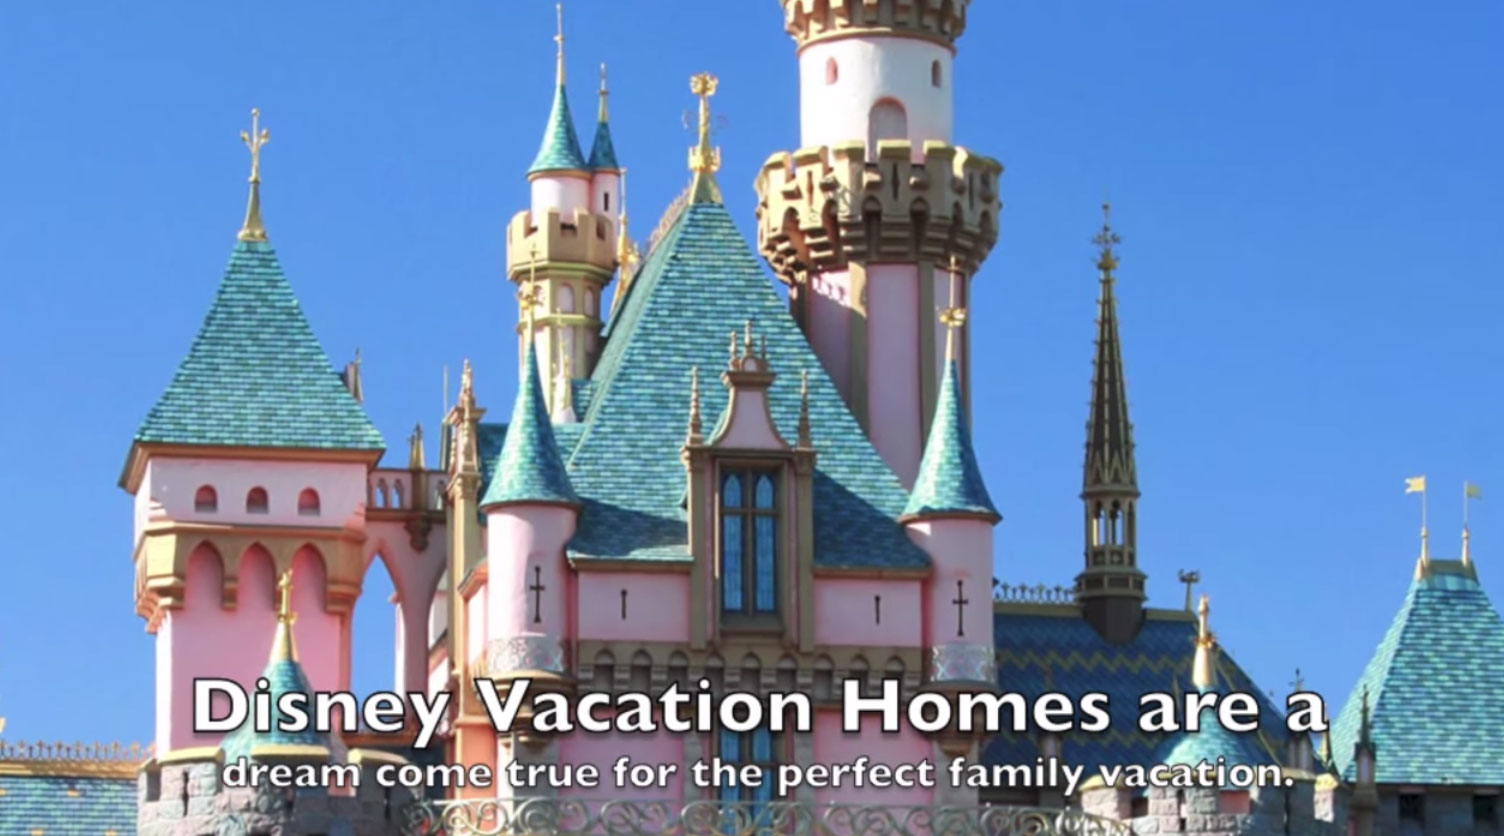 The perfect Disney vacation home and Disney vacation rentals